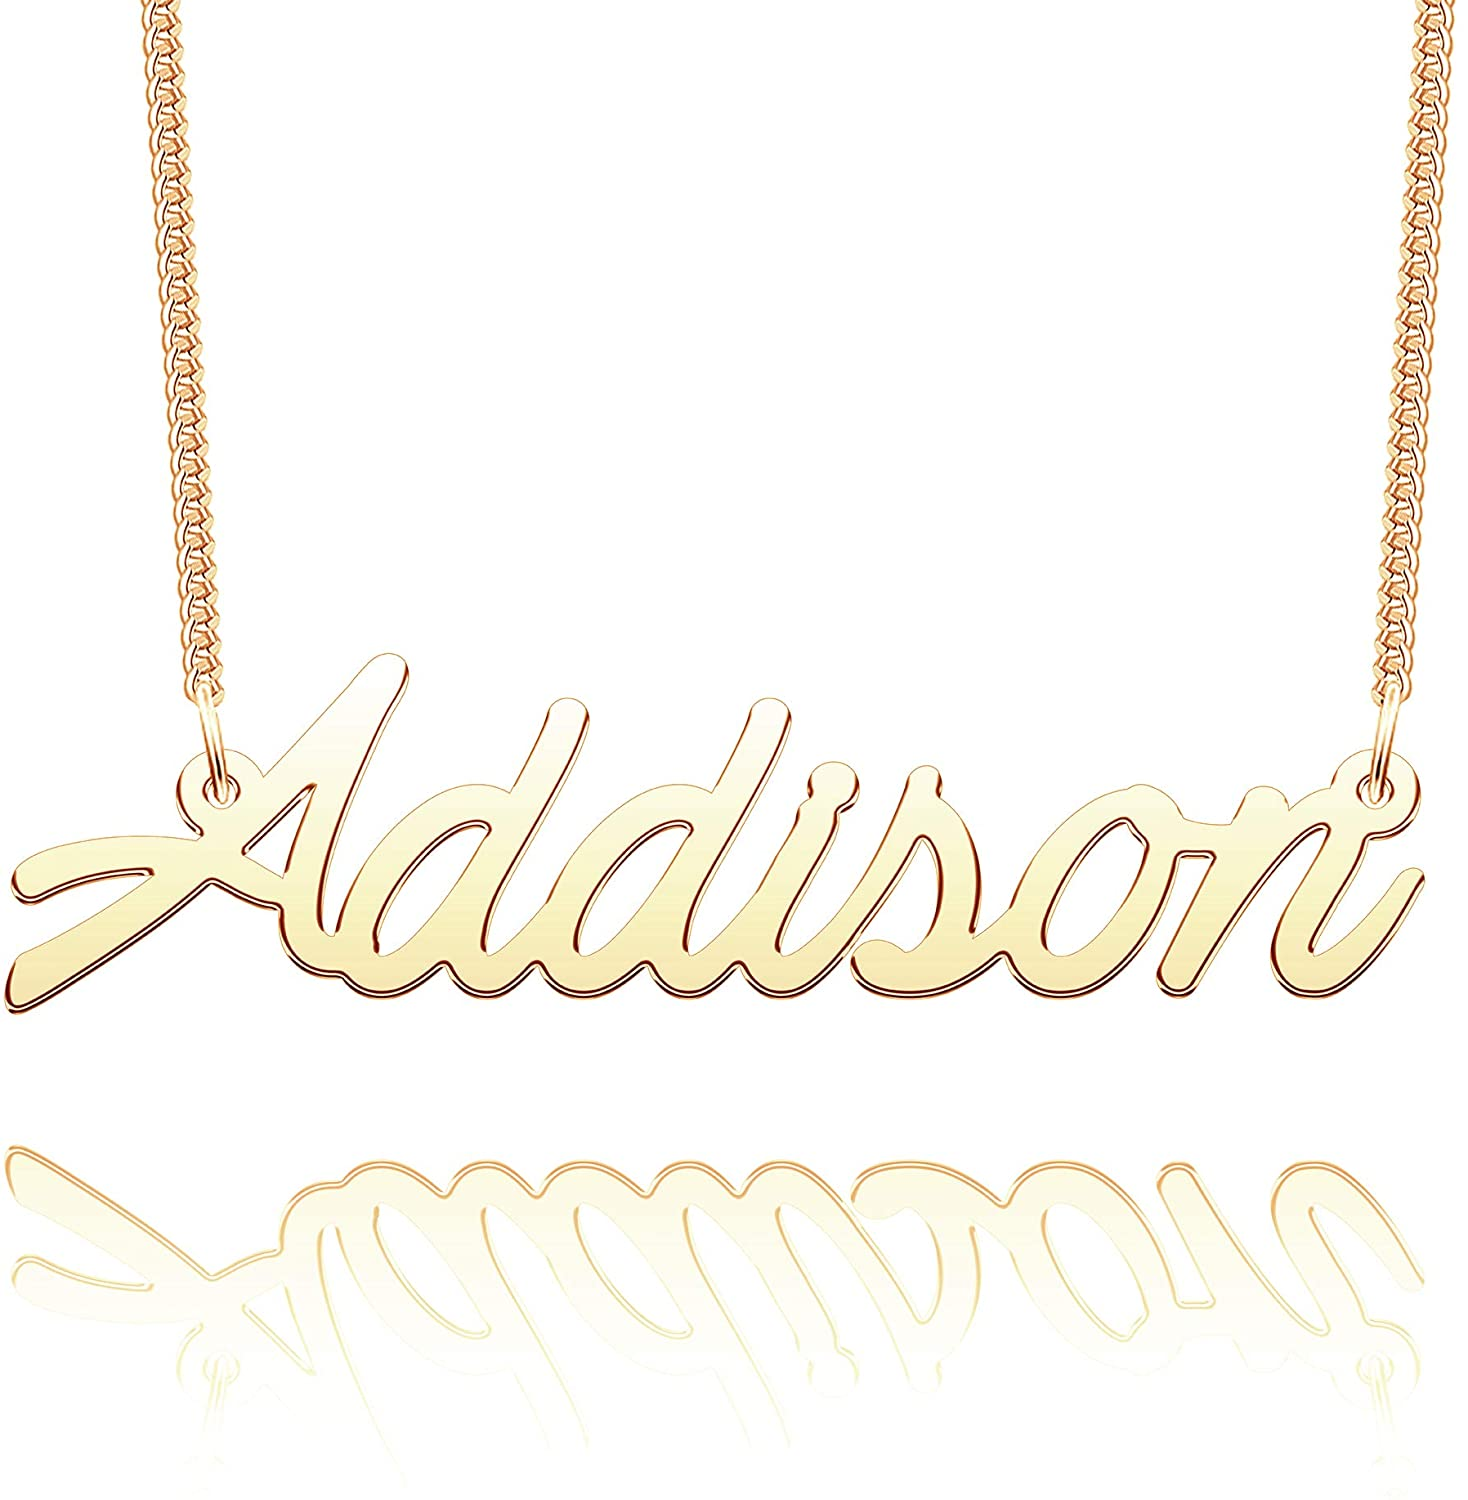 CLY Jewelry Name Necklace of Gold Plated Pendant with Personalized Gift for Women Girls Couple